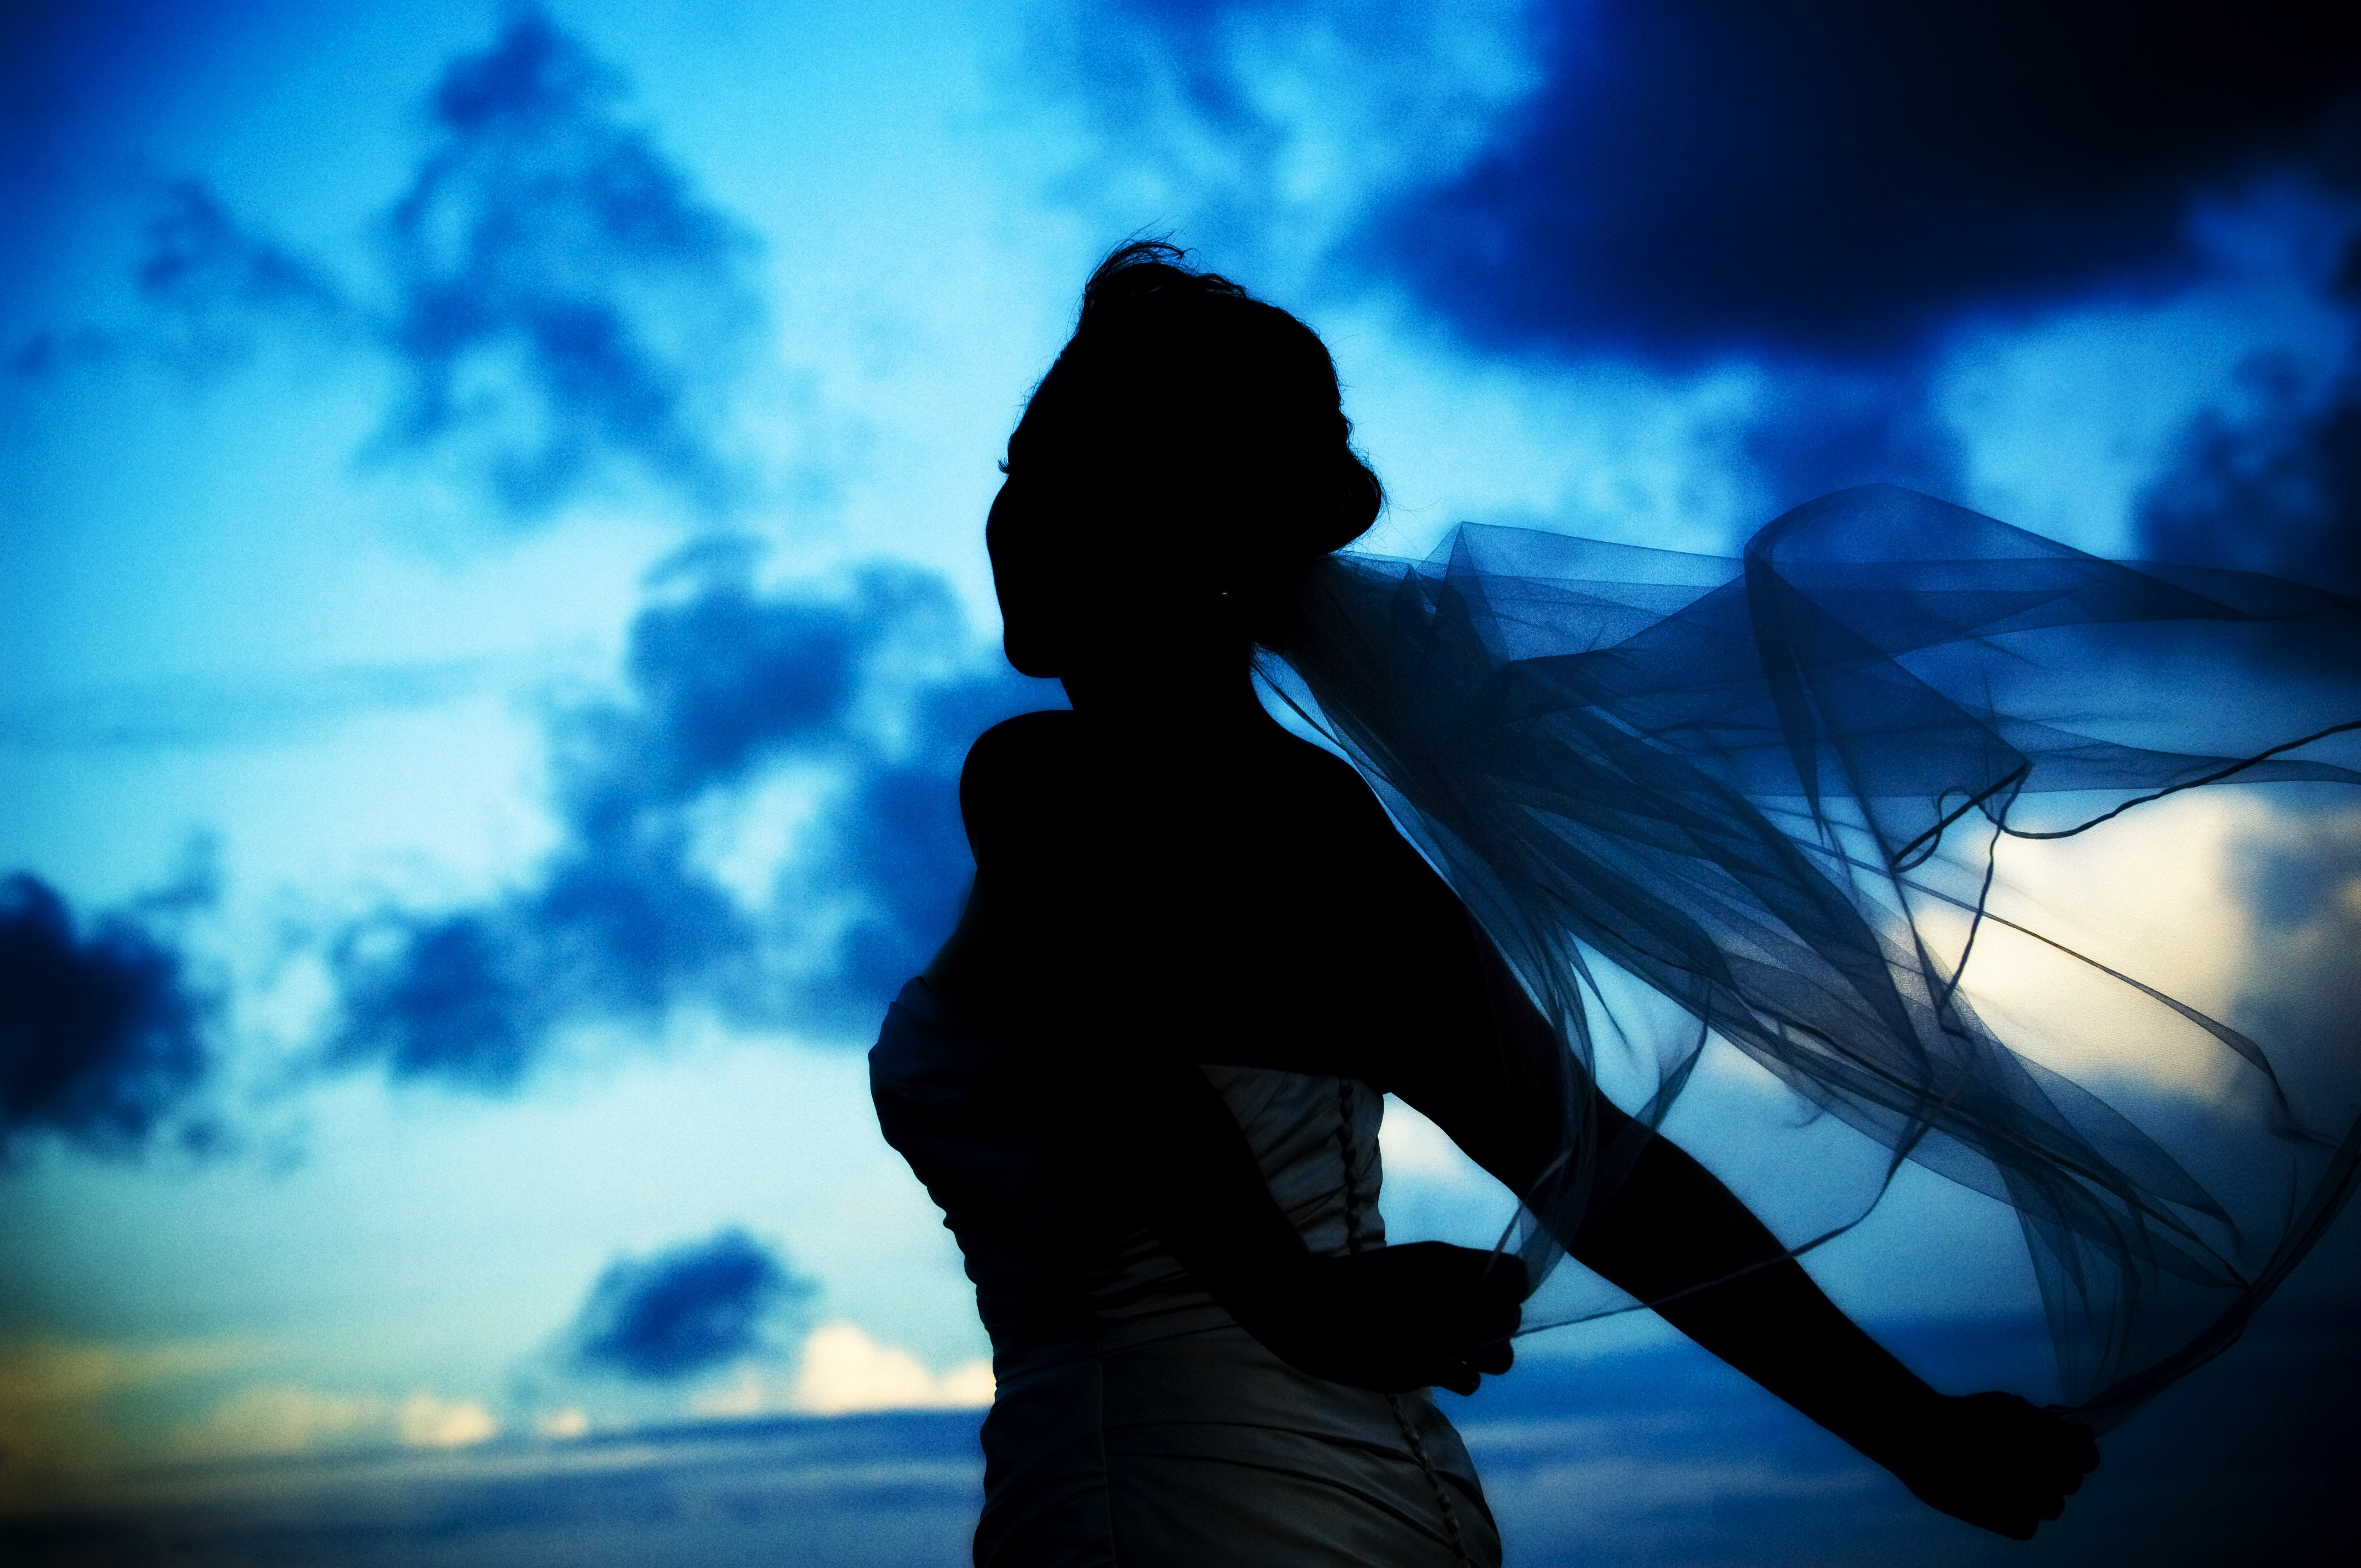 Beauty, Inspiration, Wedding Dresses, Veils, Fashion, white, blue, black, dress, Bride, Veil, Hair, Bridal, Board, Simons, St, Island, Georgia, Silhouette, Diana daley photographers